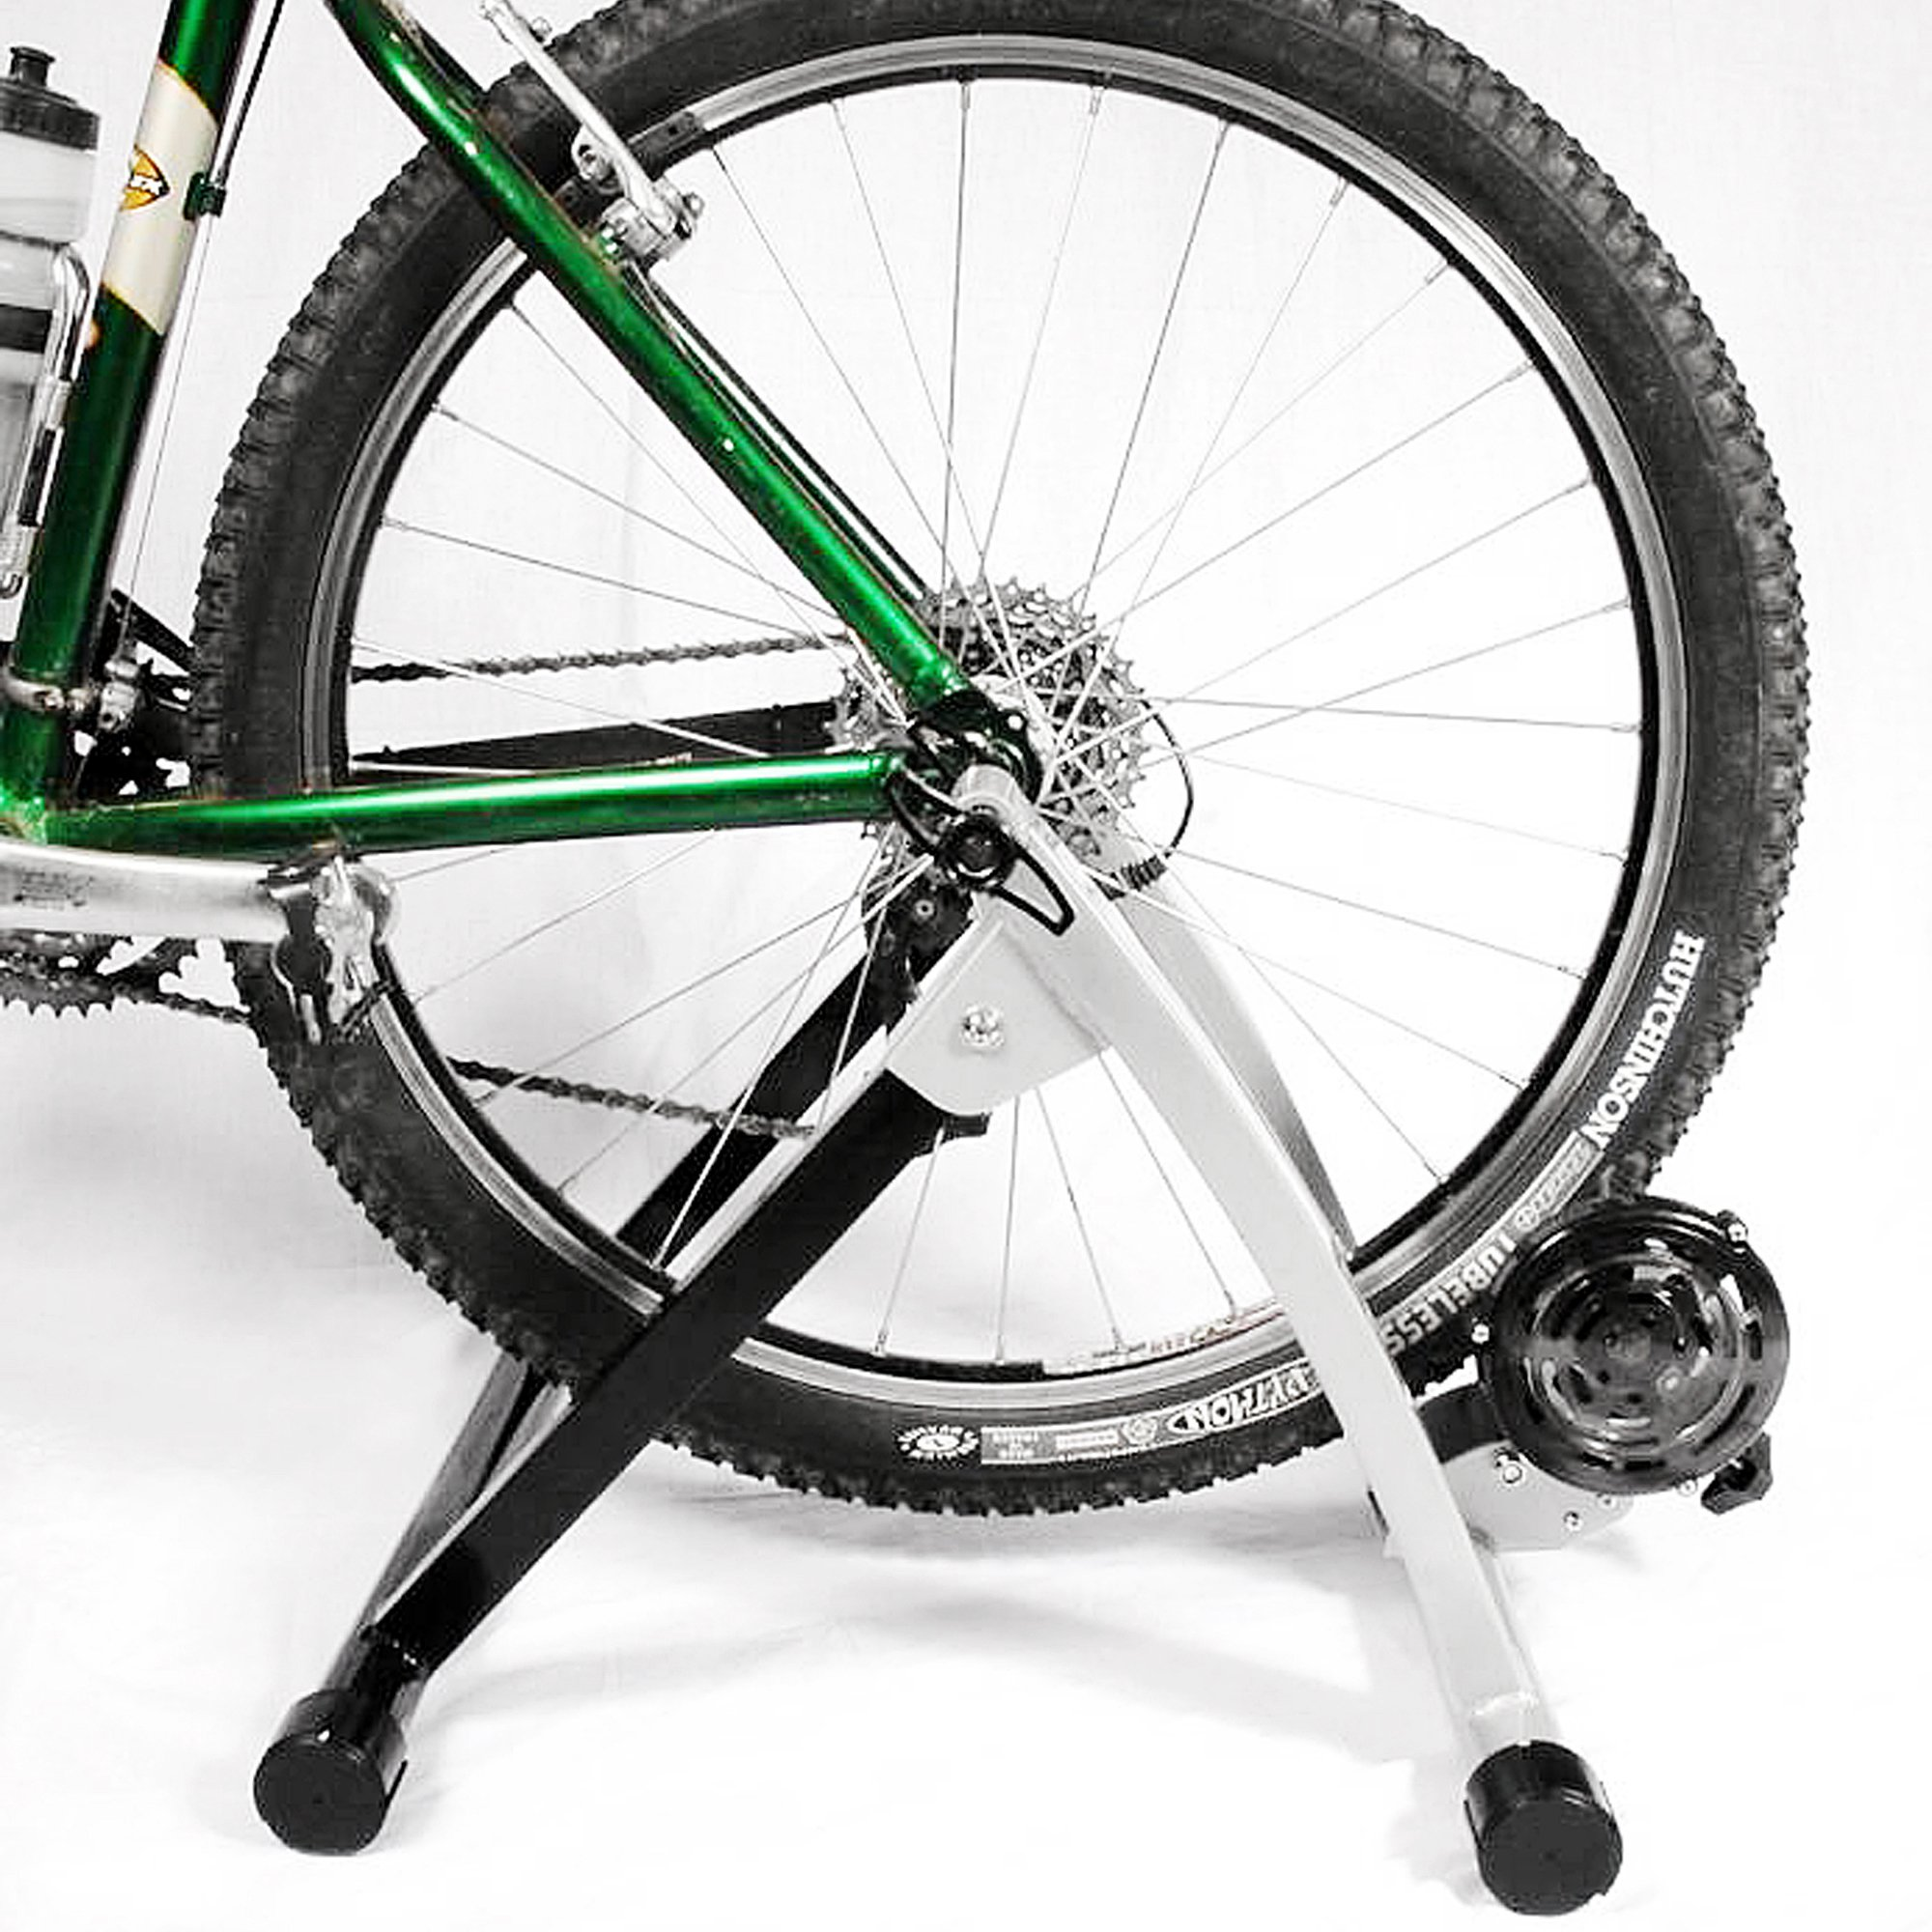 RAD Cycle Products Indoor Portable Magnetic Work Out Bicycle Trainer by RAD Cycle Products (Image #4)